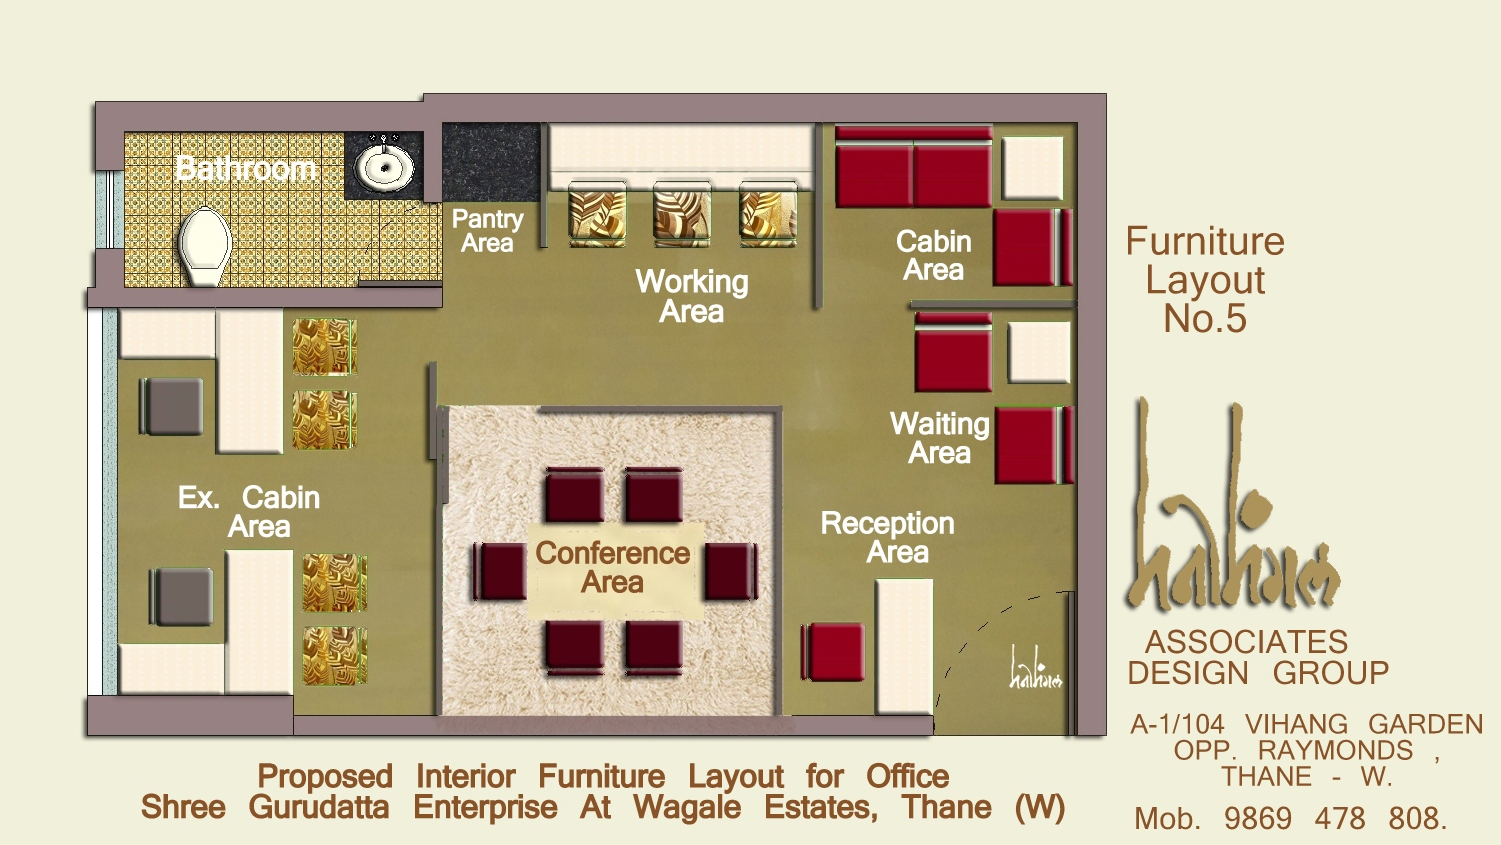 Interior Furniture Layout for Office.jpg